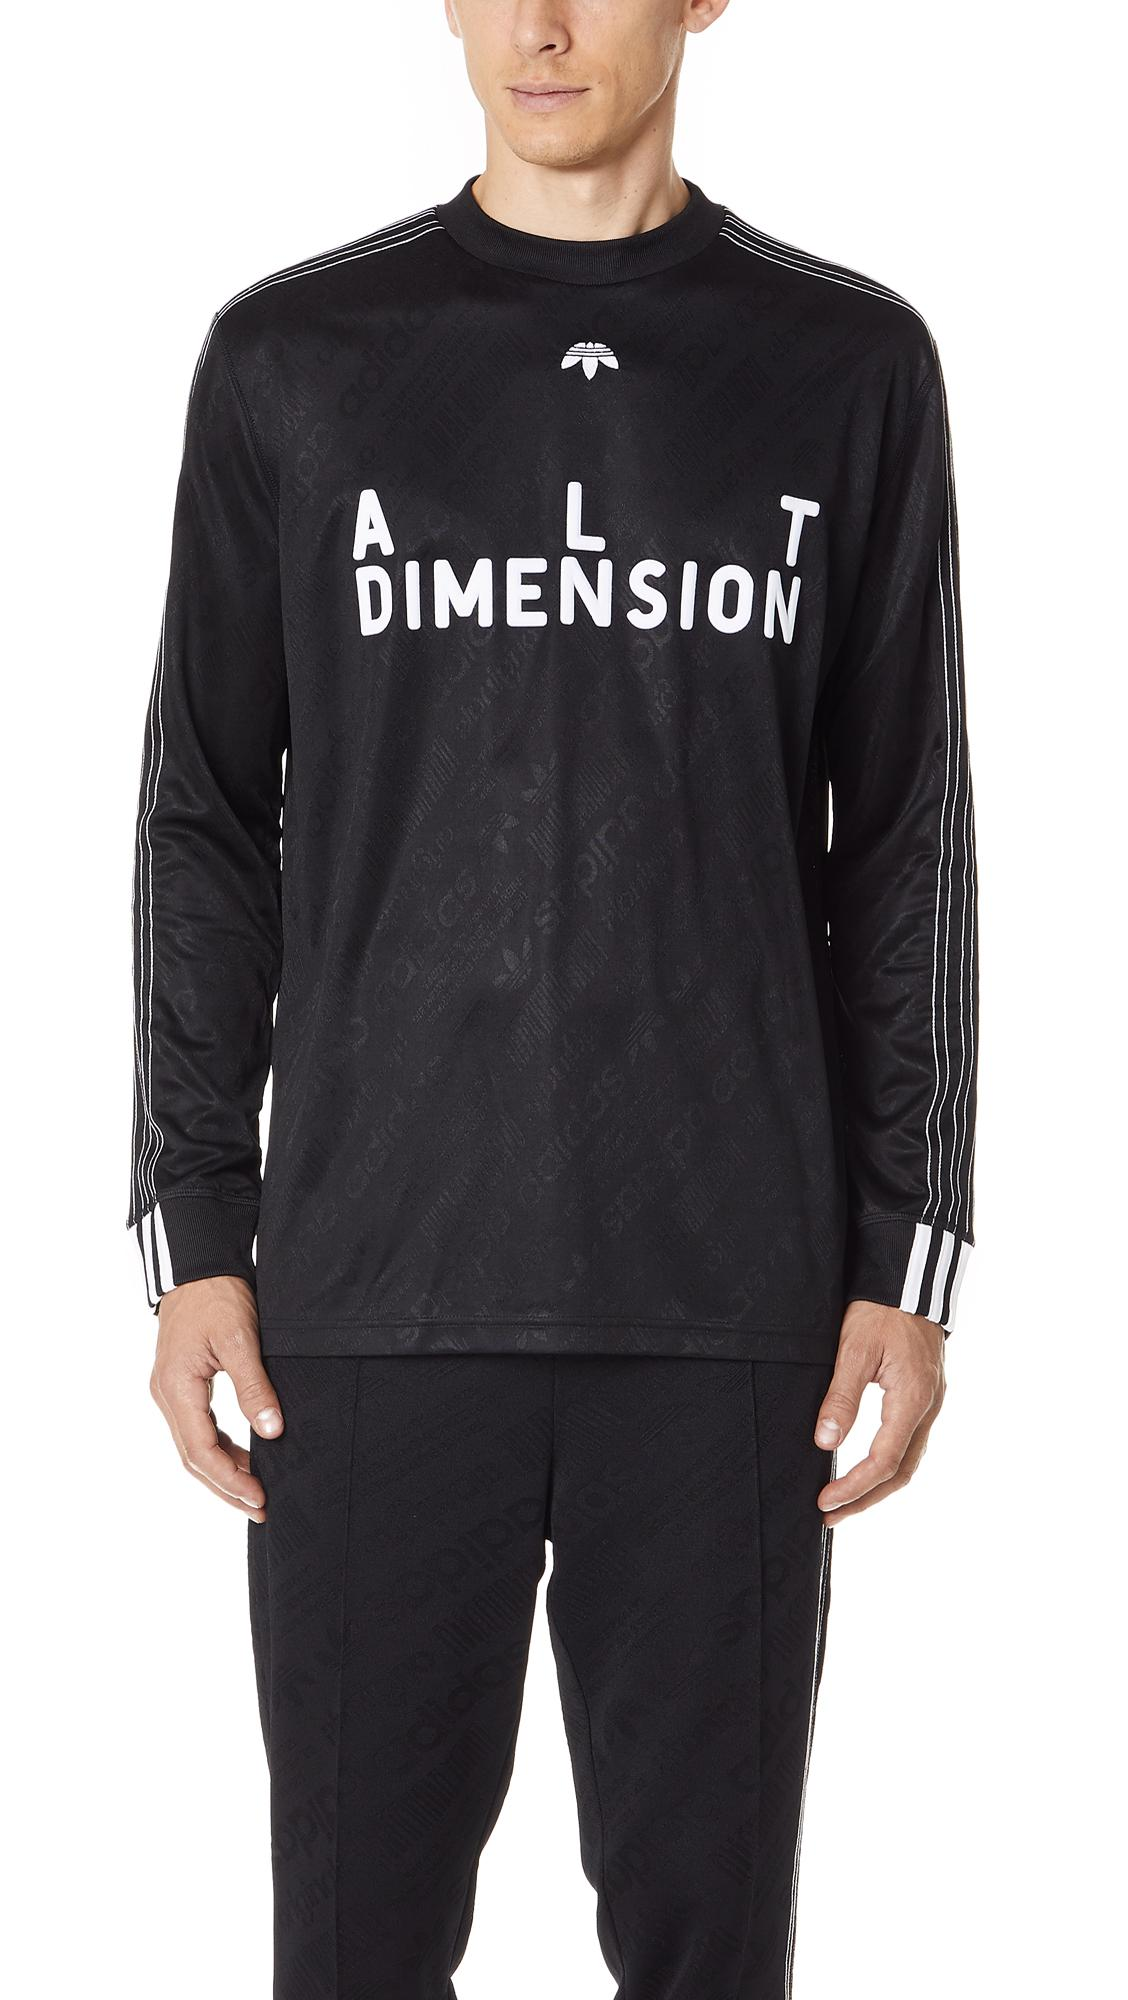 Adidas Originals By Alexander Wang Alt Dimension Long Sleeve Soccer Jersey In Black